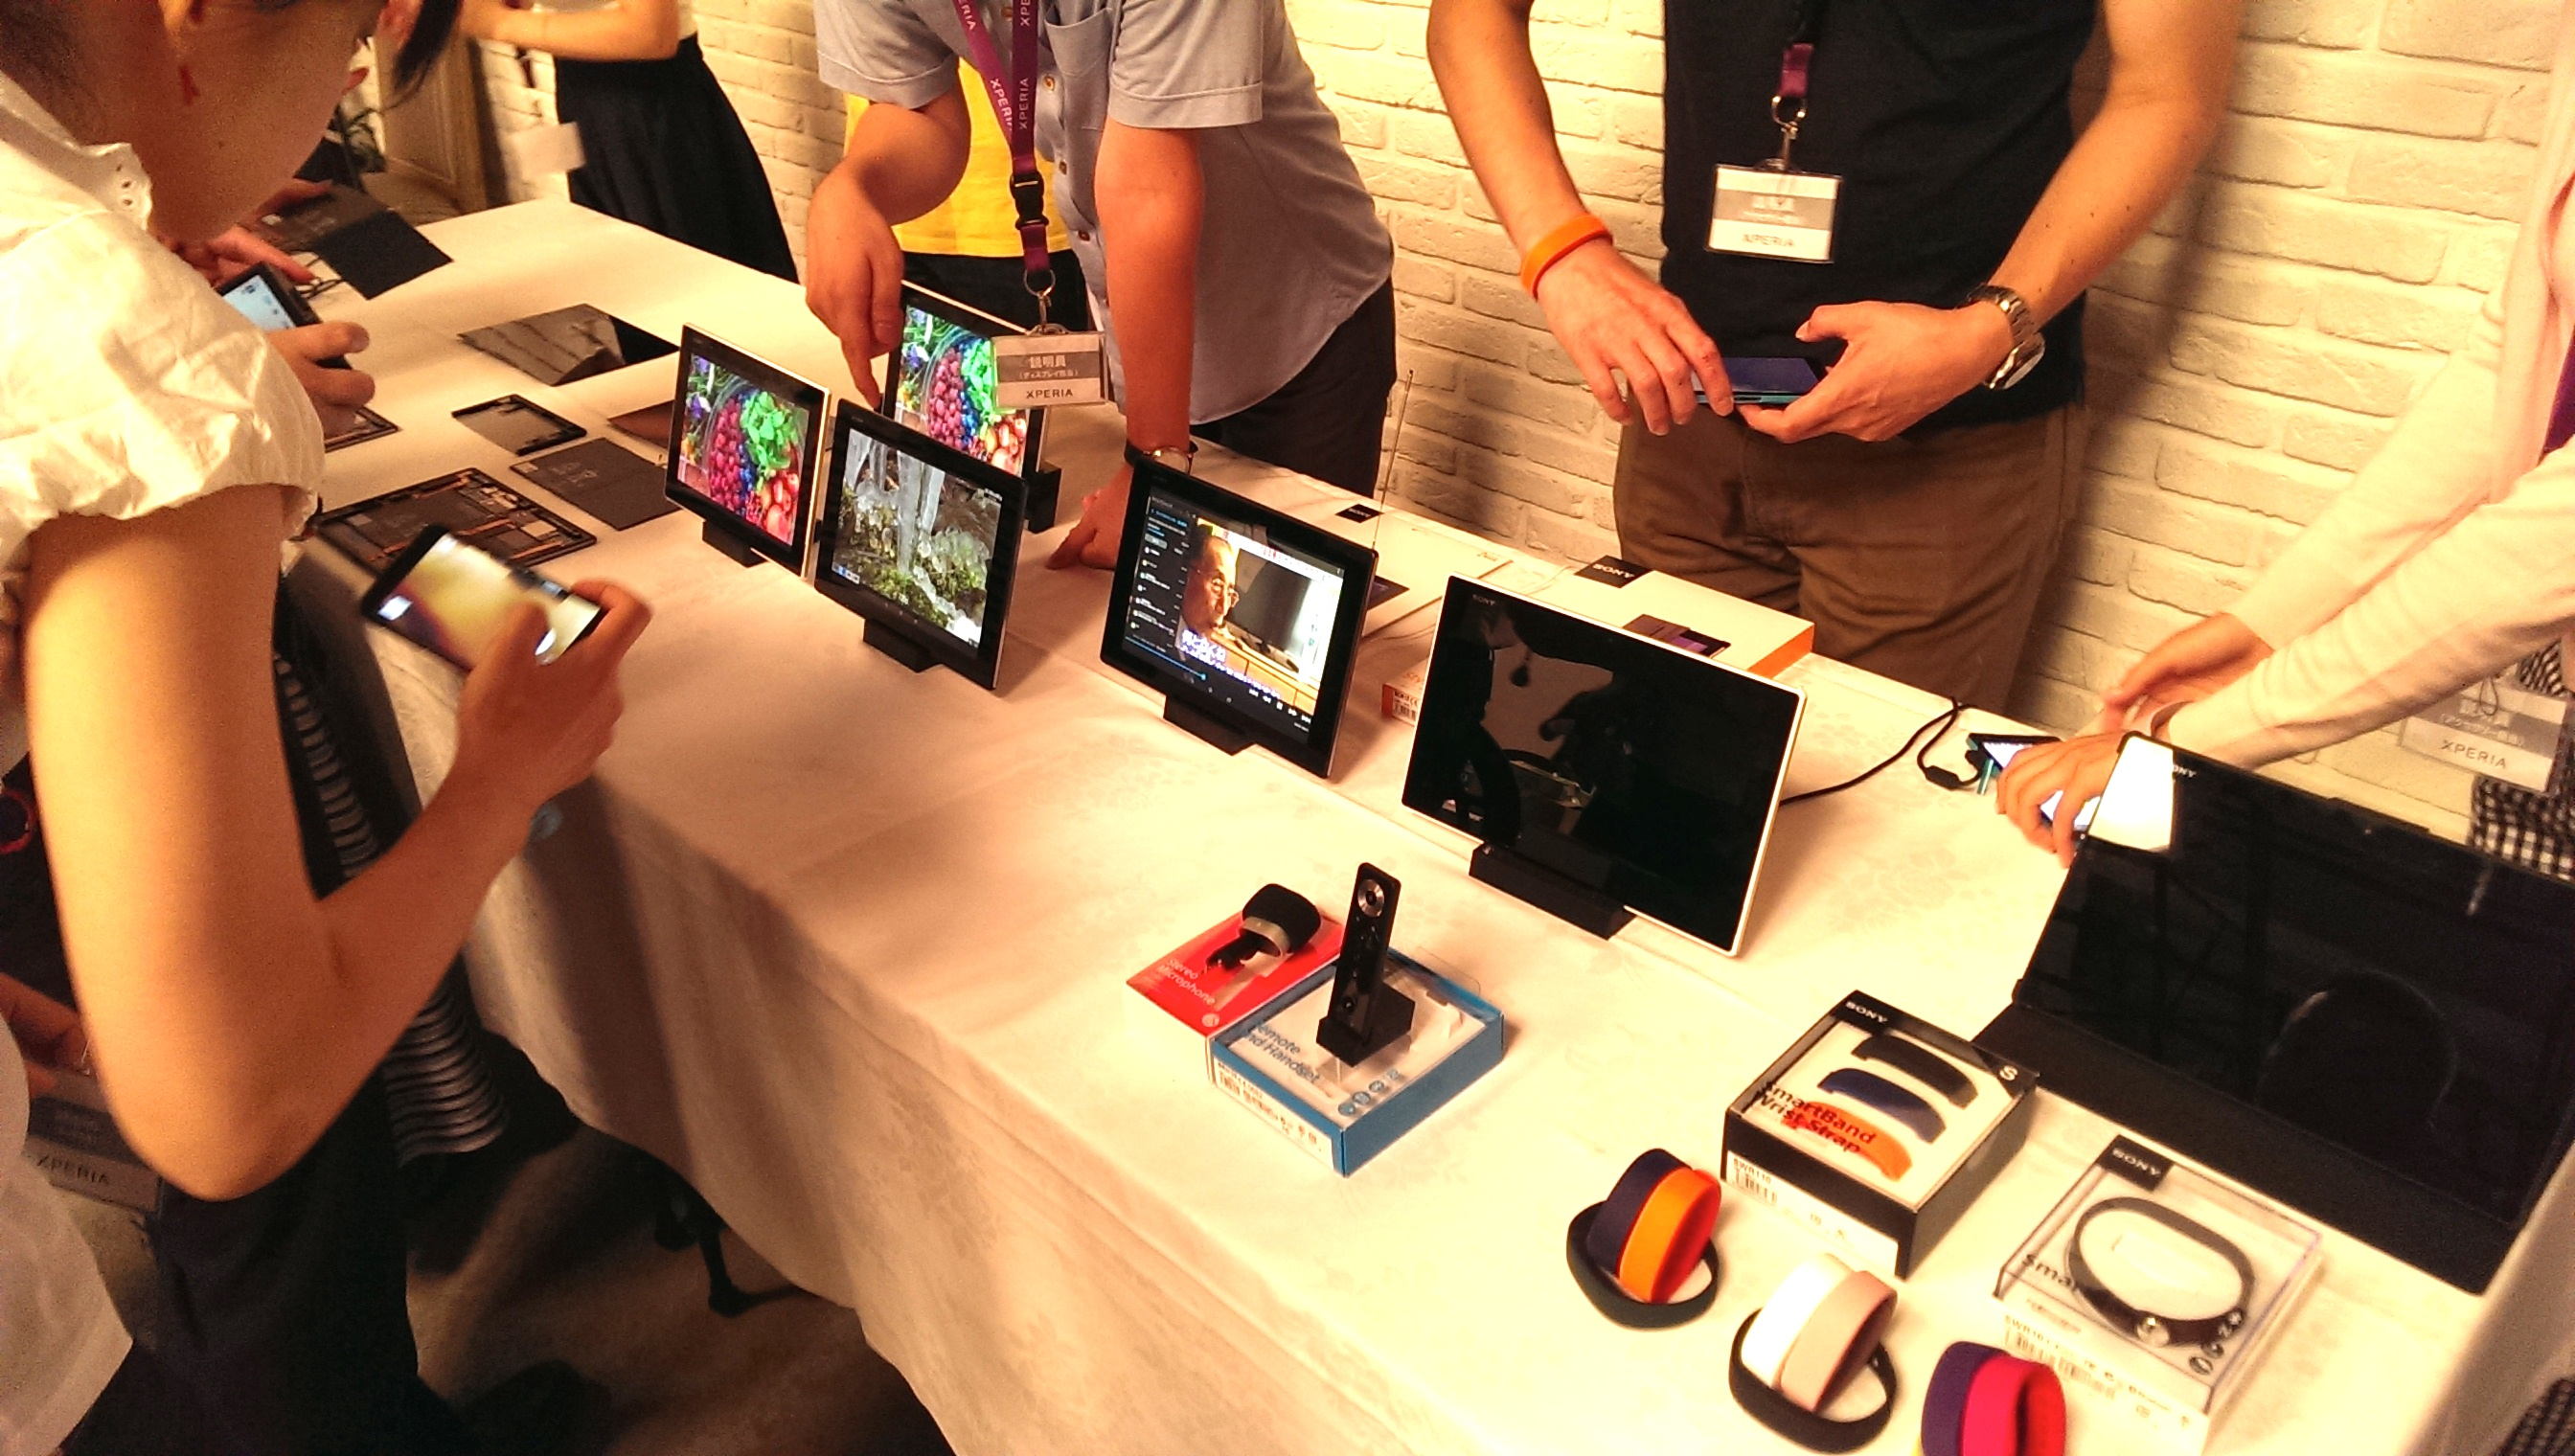 「Xperia™ Z2 Tabletタッチ&トライ」アンバサダー ミーティング Vol.4に参加しました #Xperiaアンバサダー